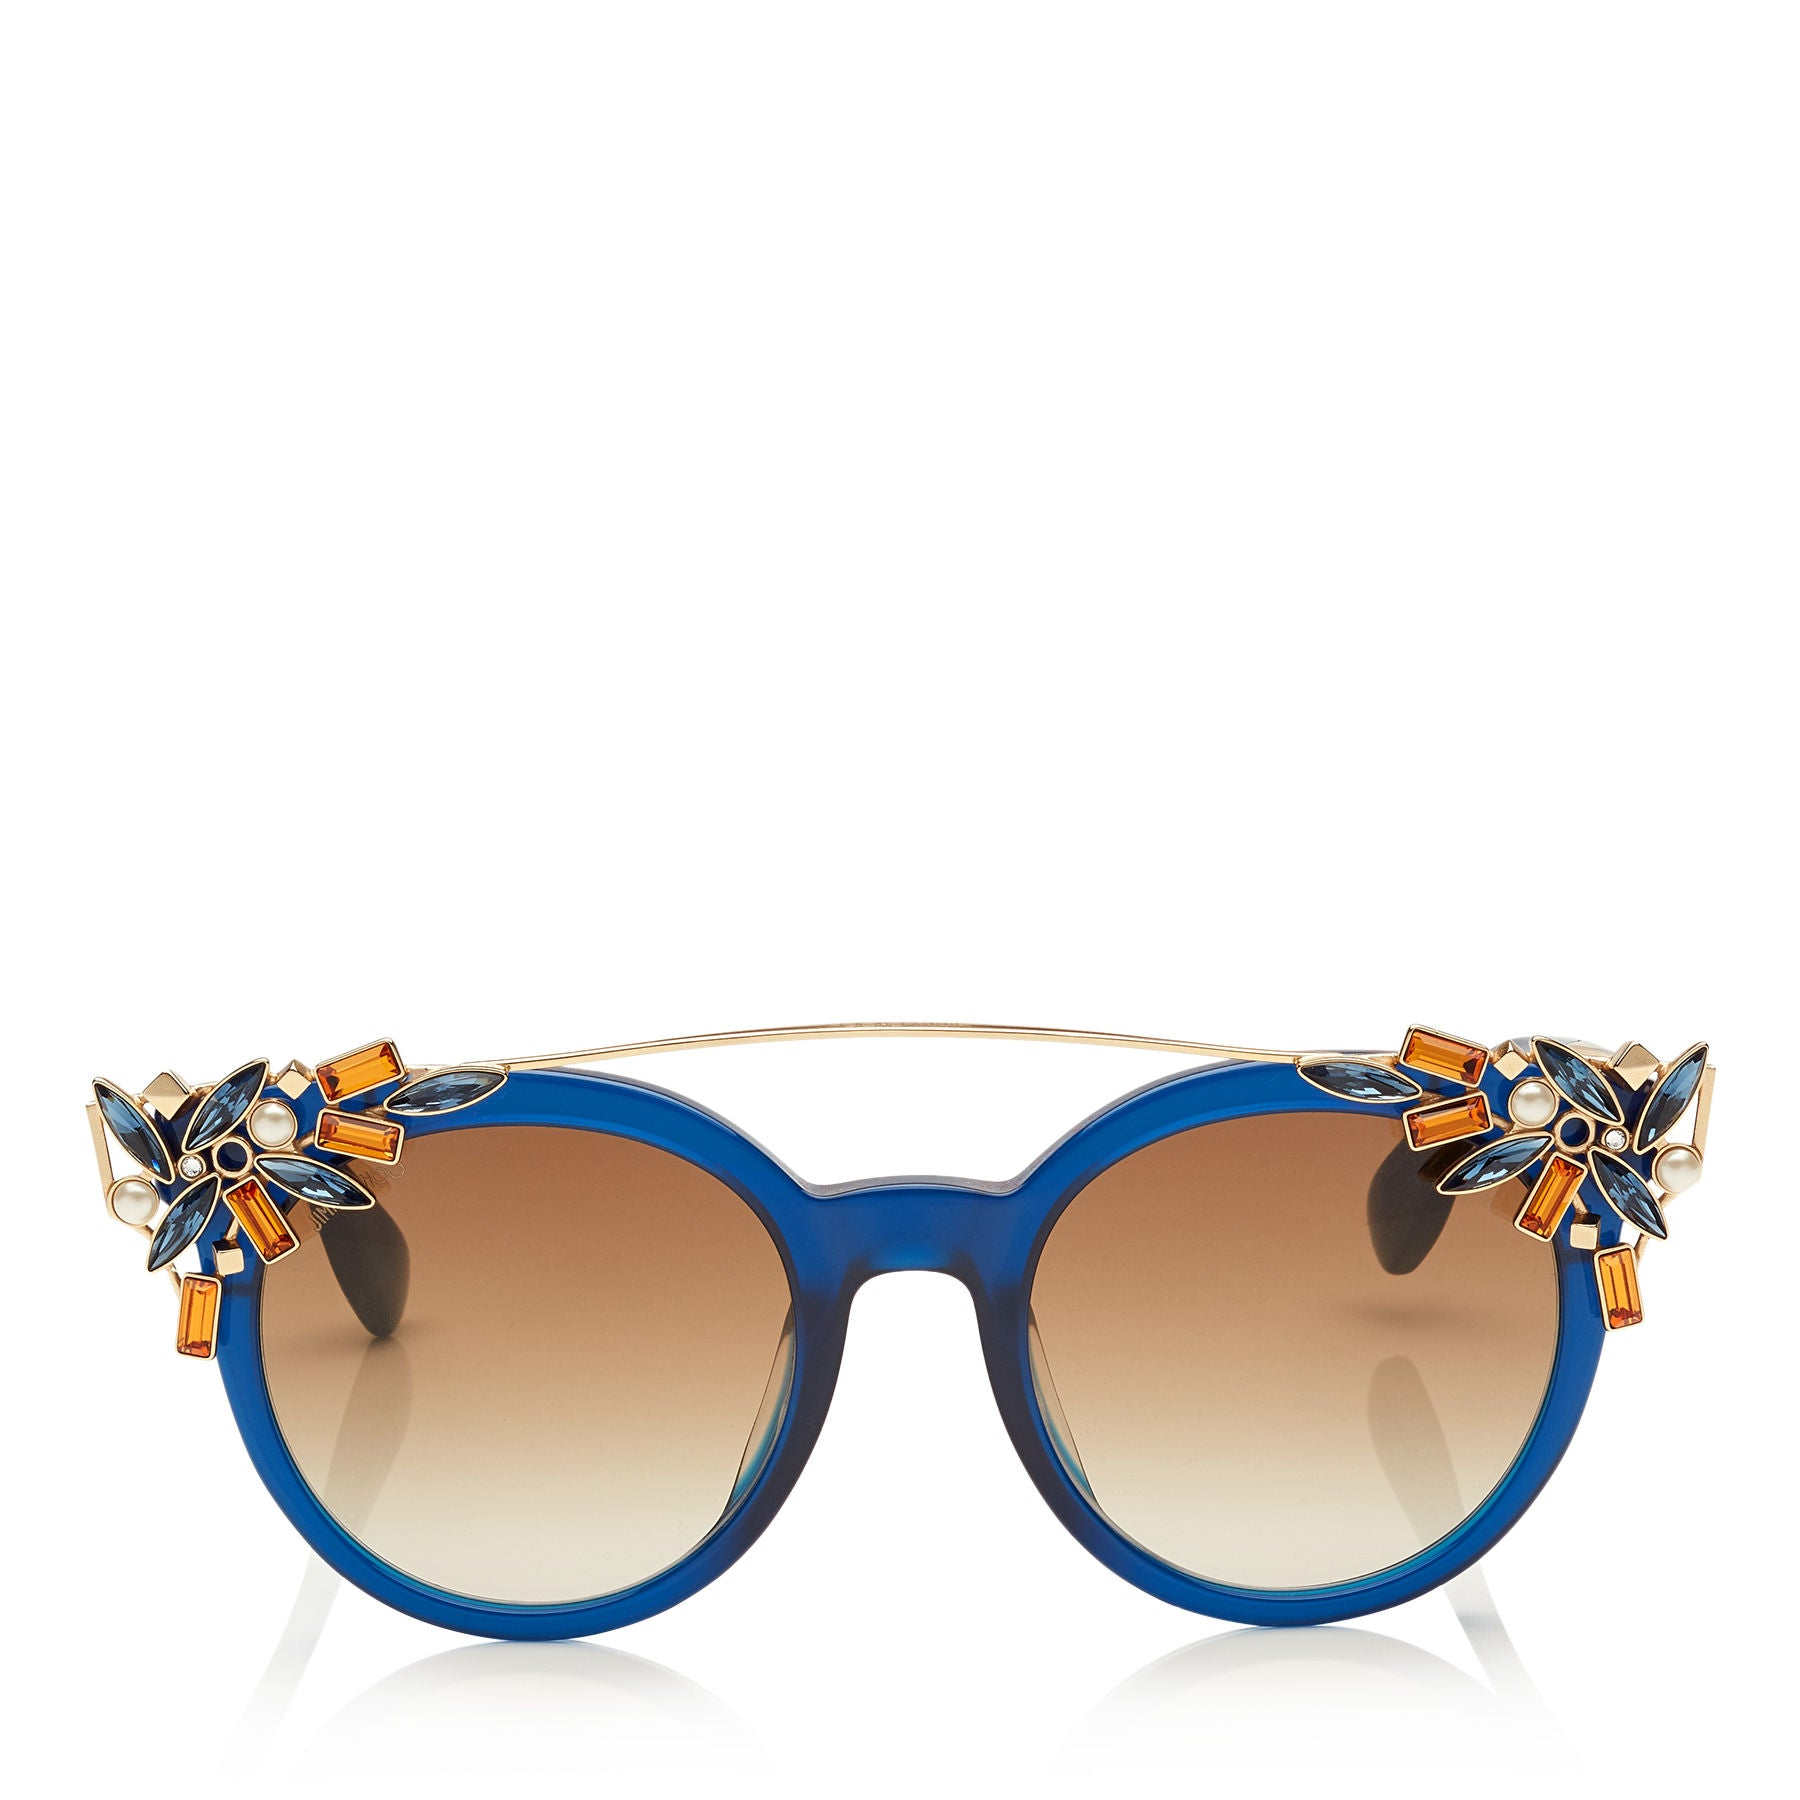 JIMMY CHOO Vivy Blue and Gold Round Framed Sunglasses with Detachable Jewel Clip On ITEM NO. VIVYS51E1UN